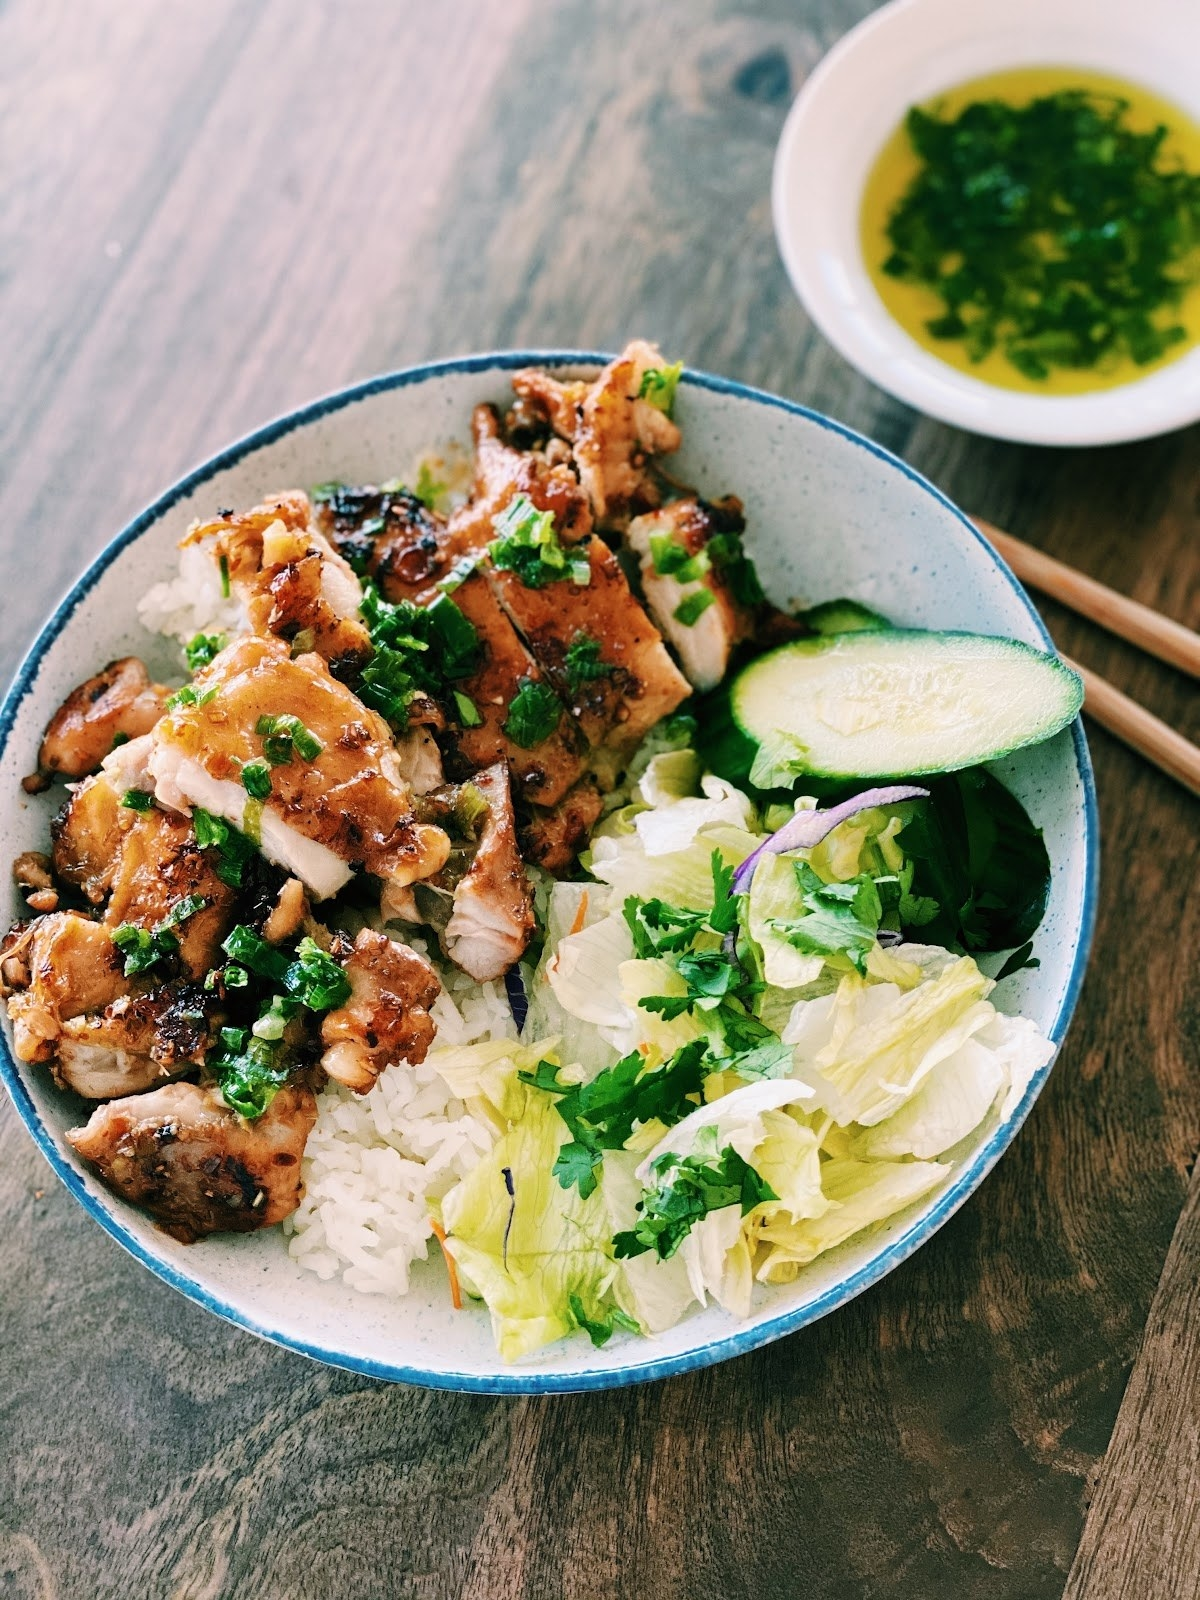 A rice bowl with chicken, cabbage, and scallion oil.